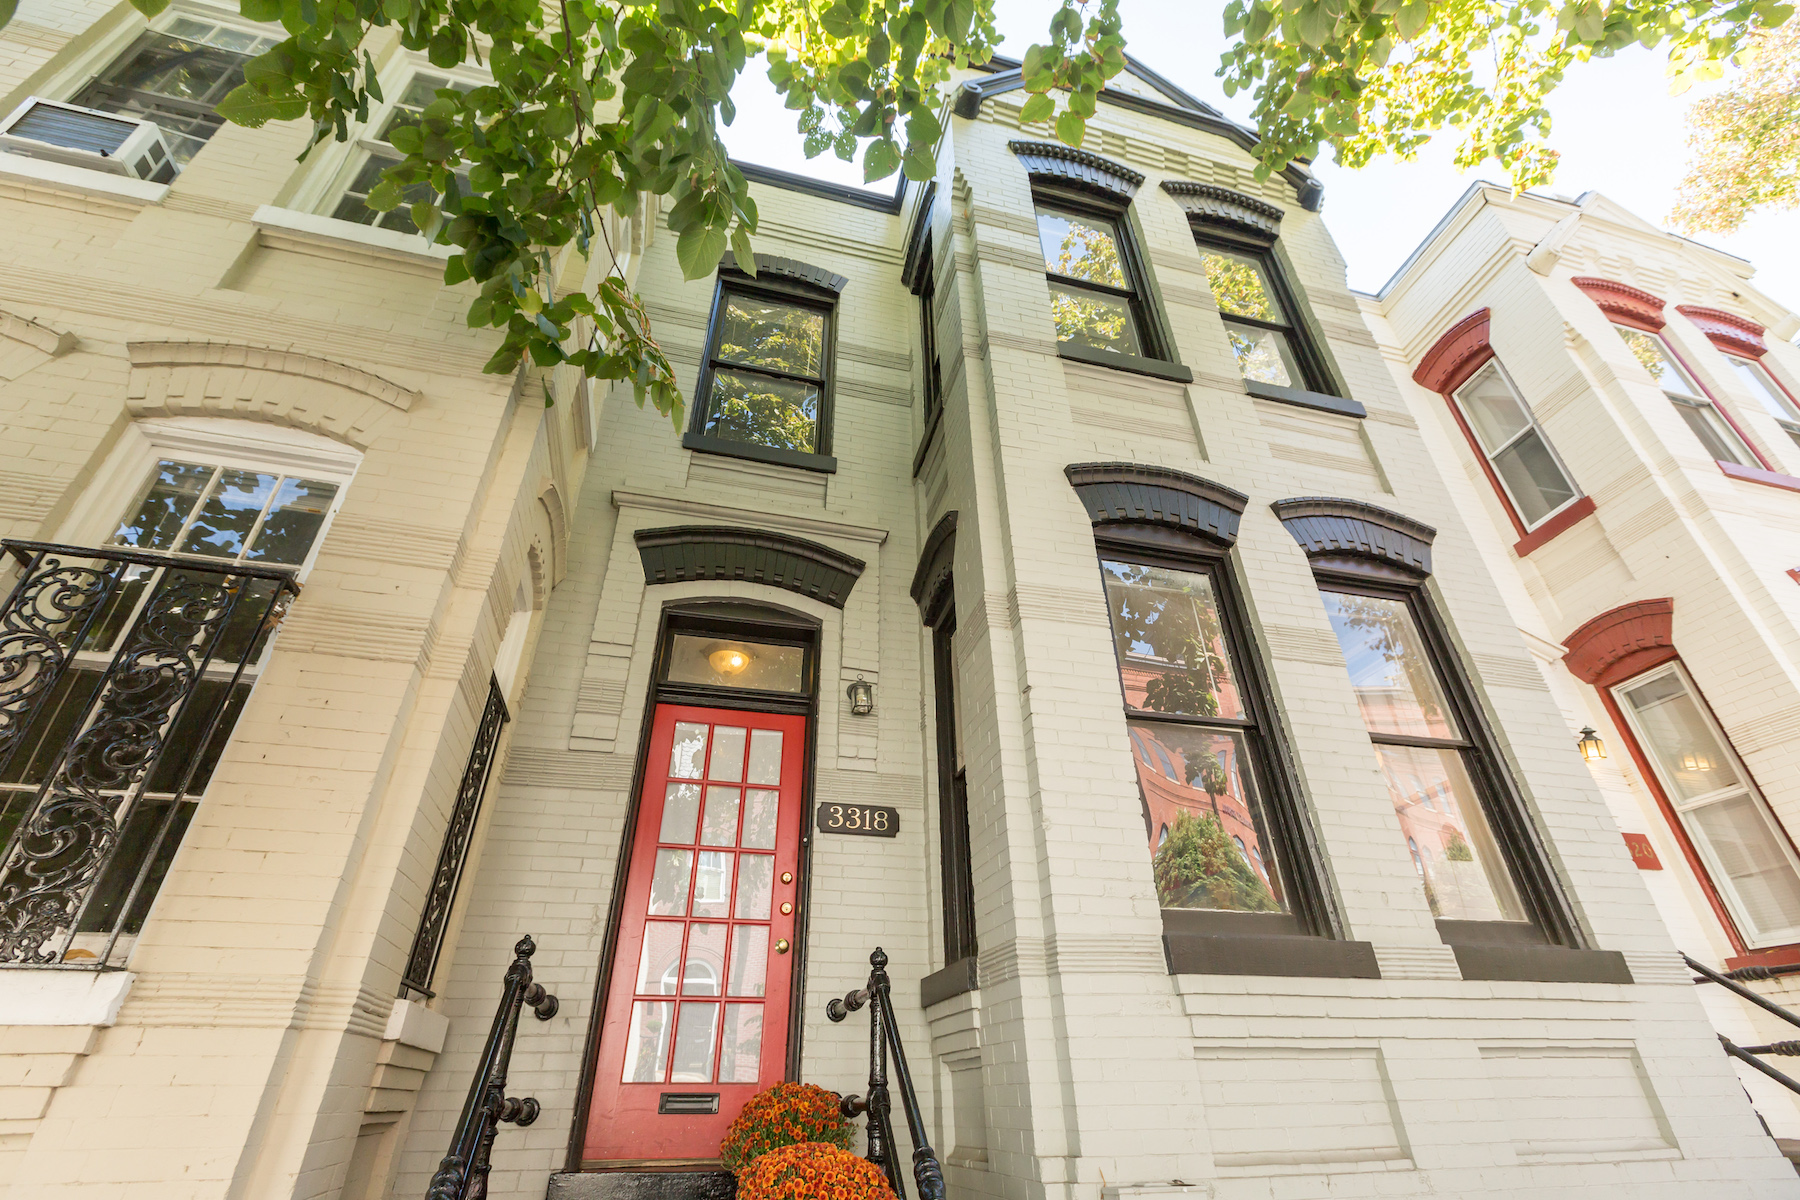 Townhouse for Sale at Georgetown 3318 Prospect Street Nw Washington, District Of Columbia 20007 United States